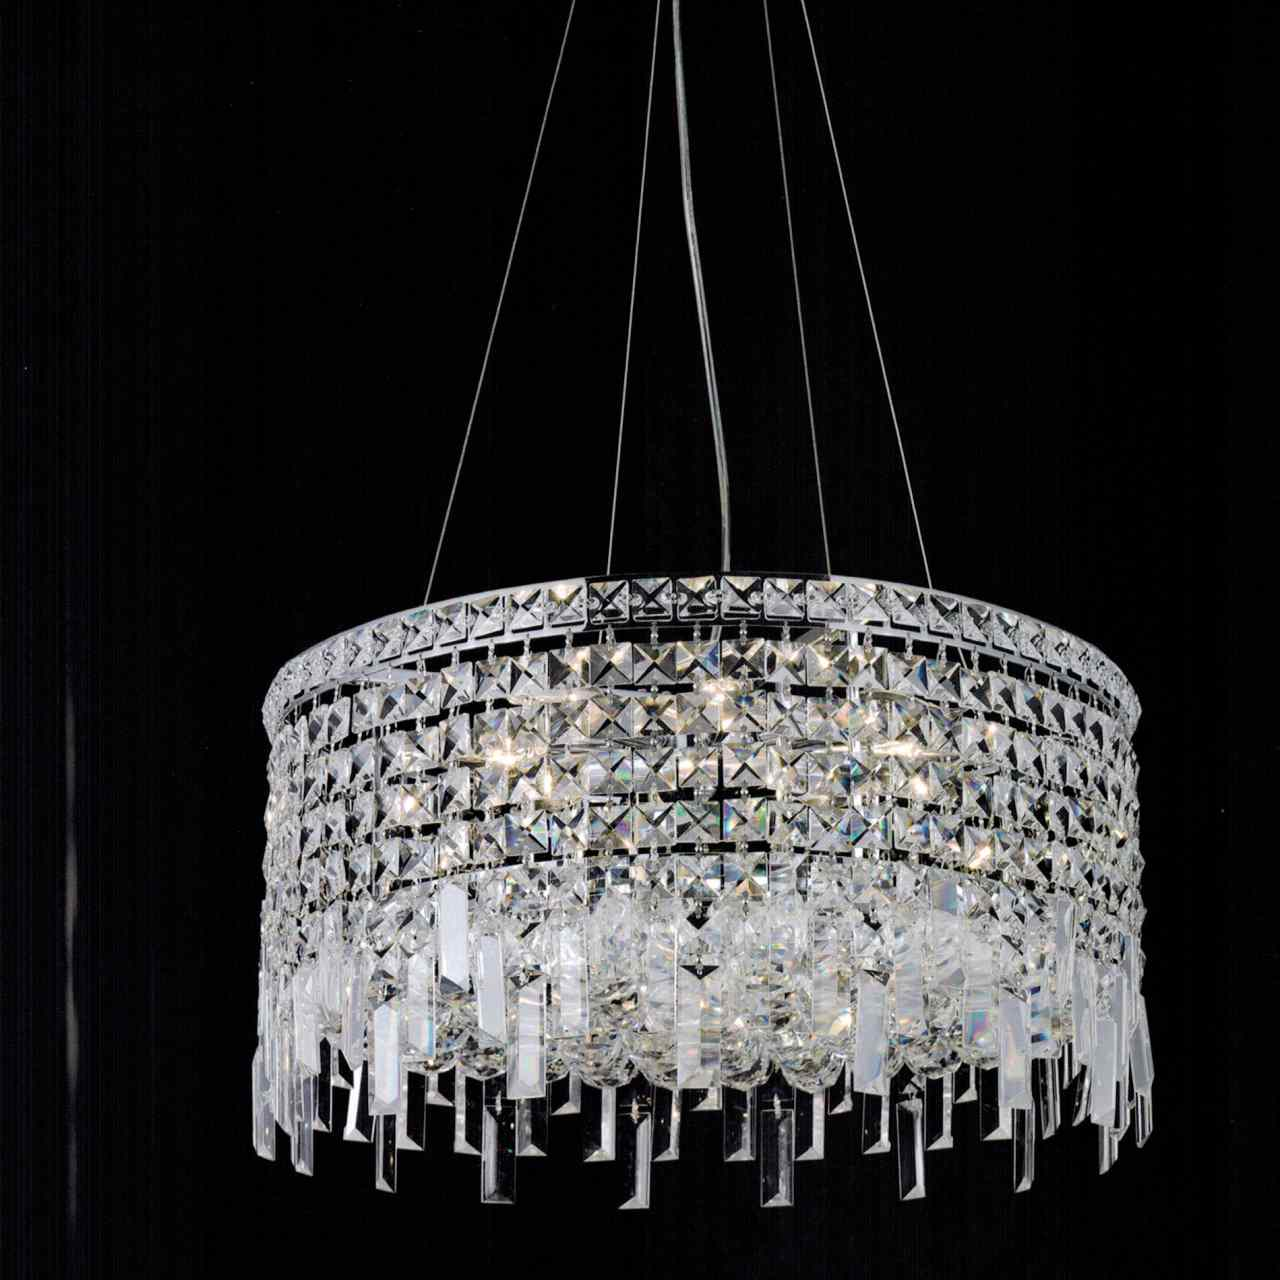 Brizzo lighting stores 16 bossolo transitional crystal round pendant chandelier polished - Crystal hanging chandelier ...